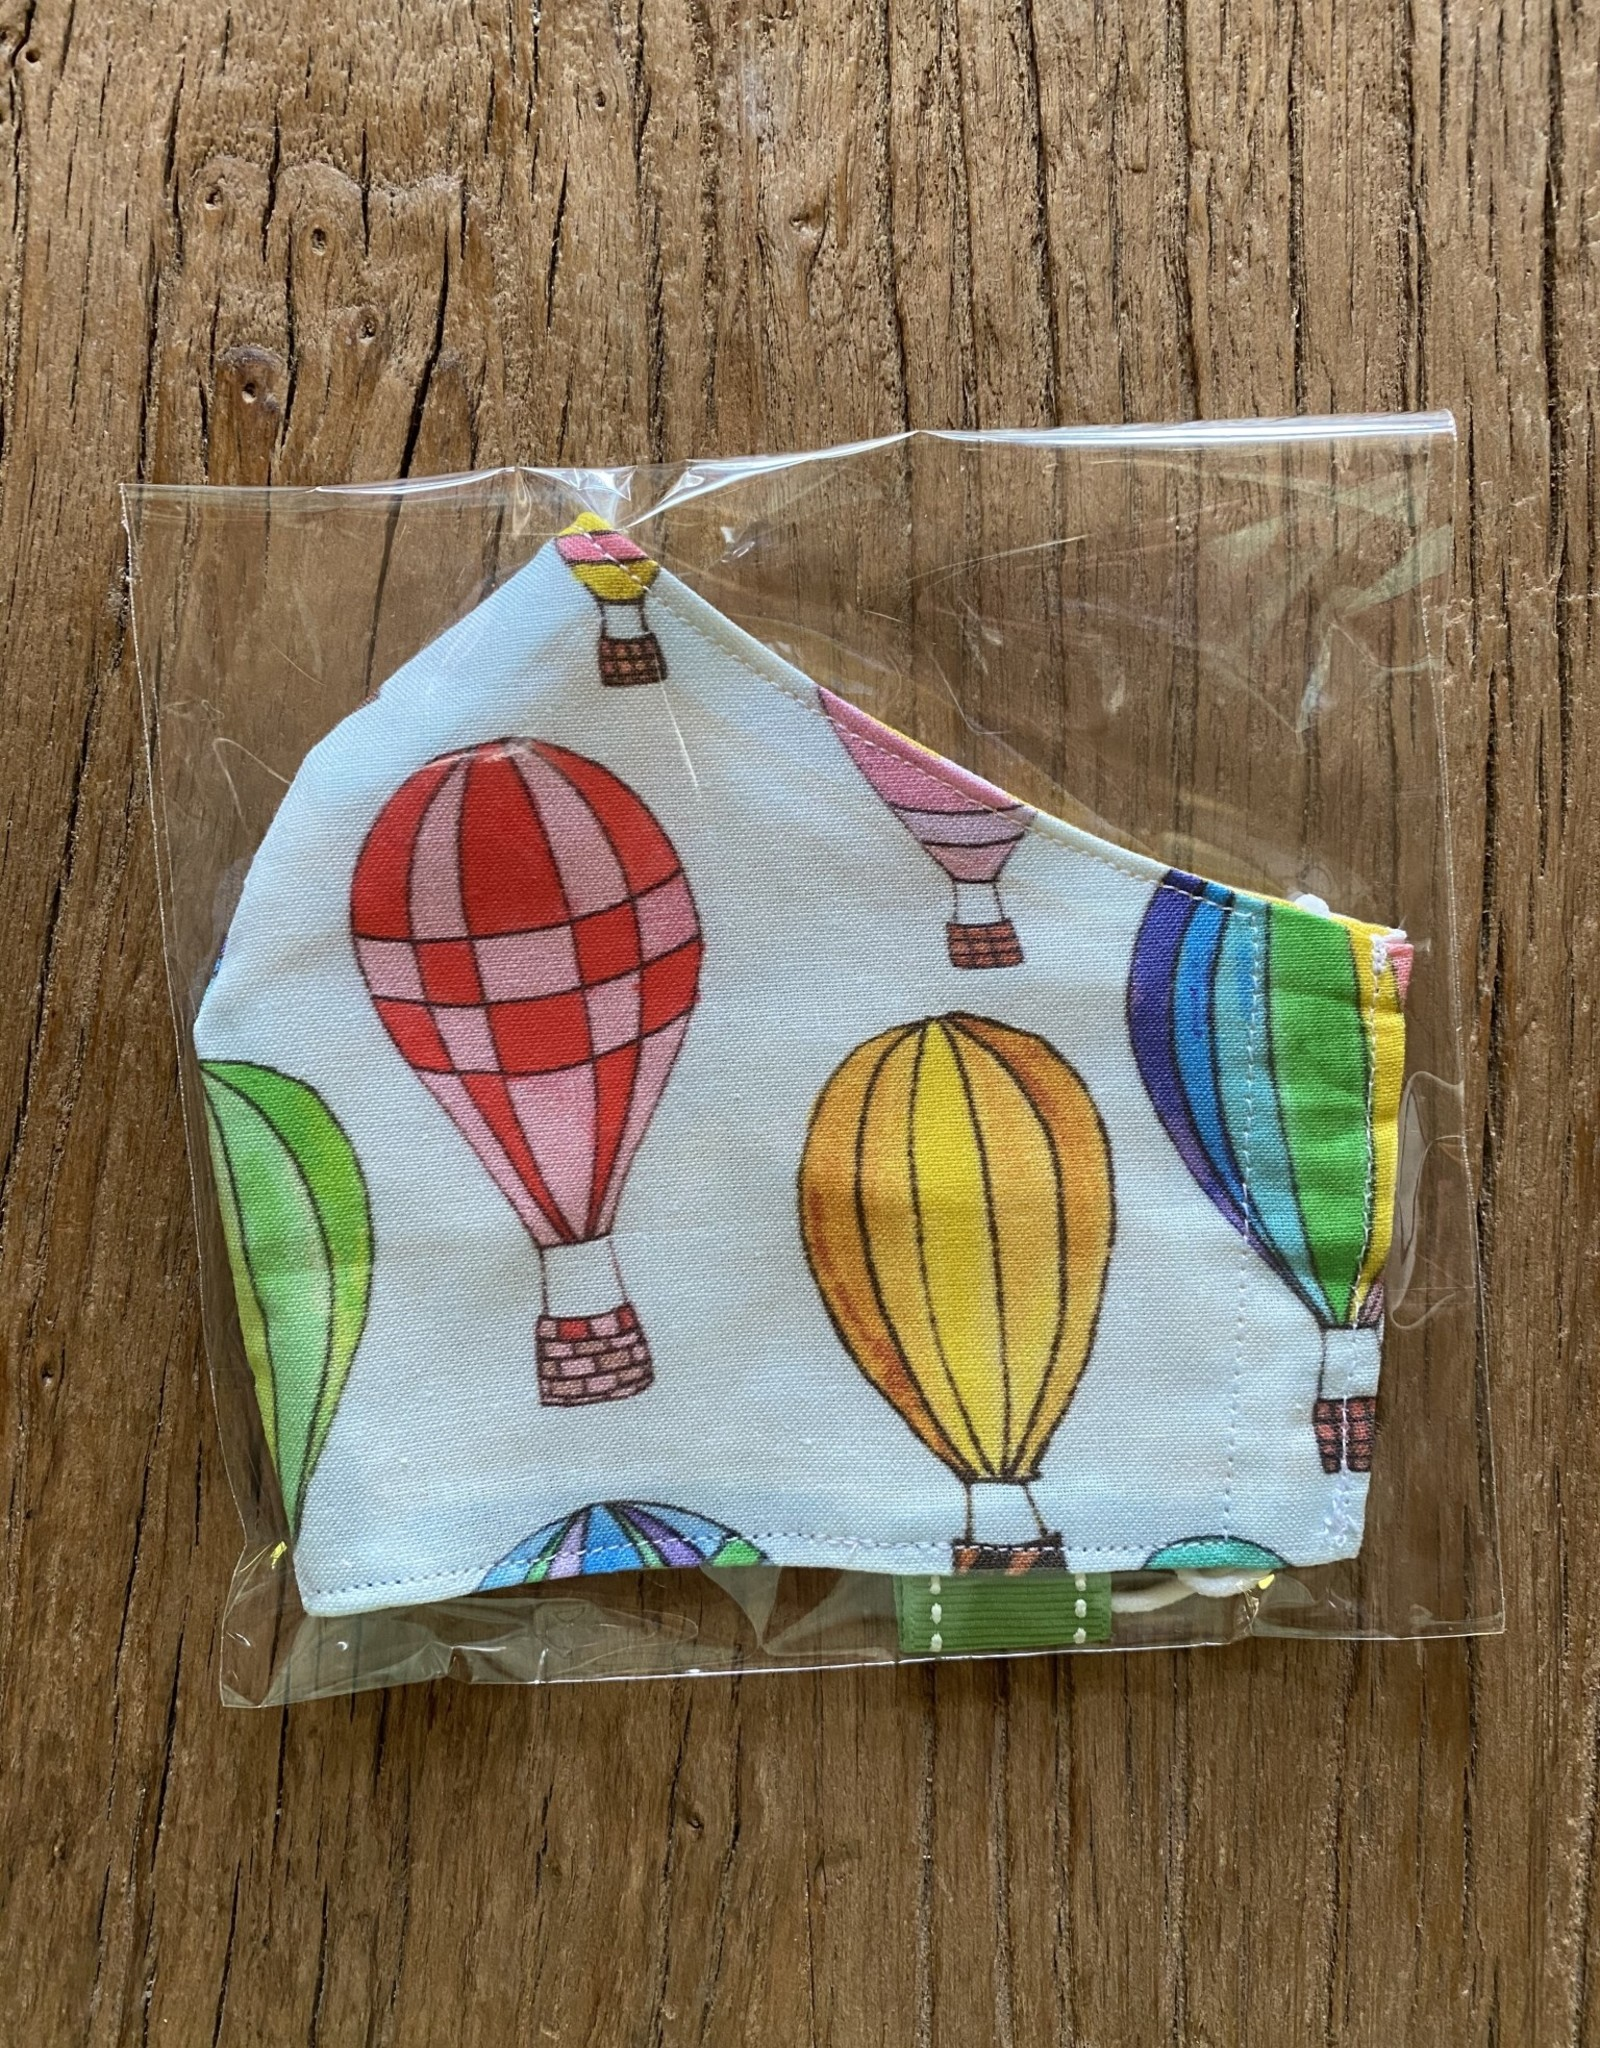 S Rose Rose Mask - Adult Hot Air Balloons